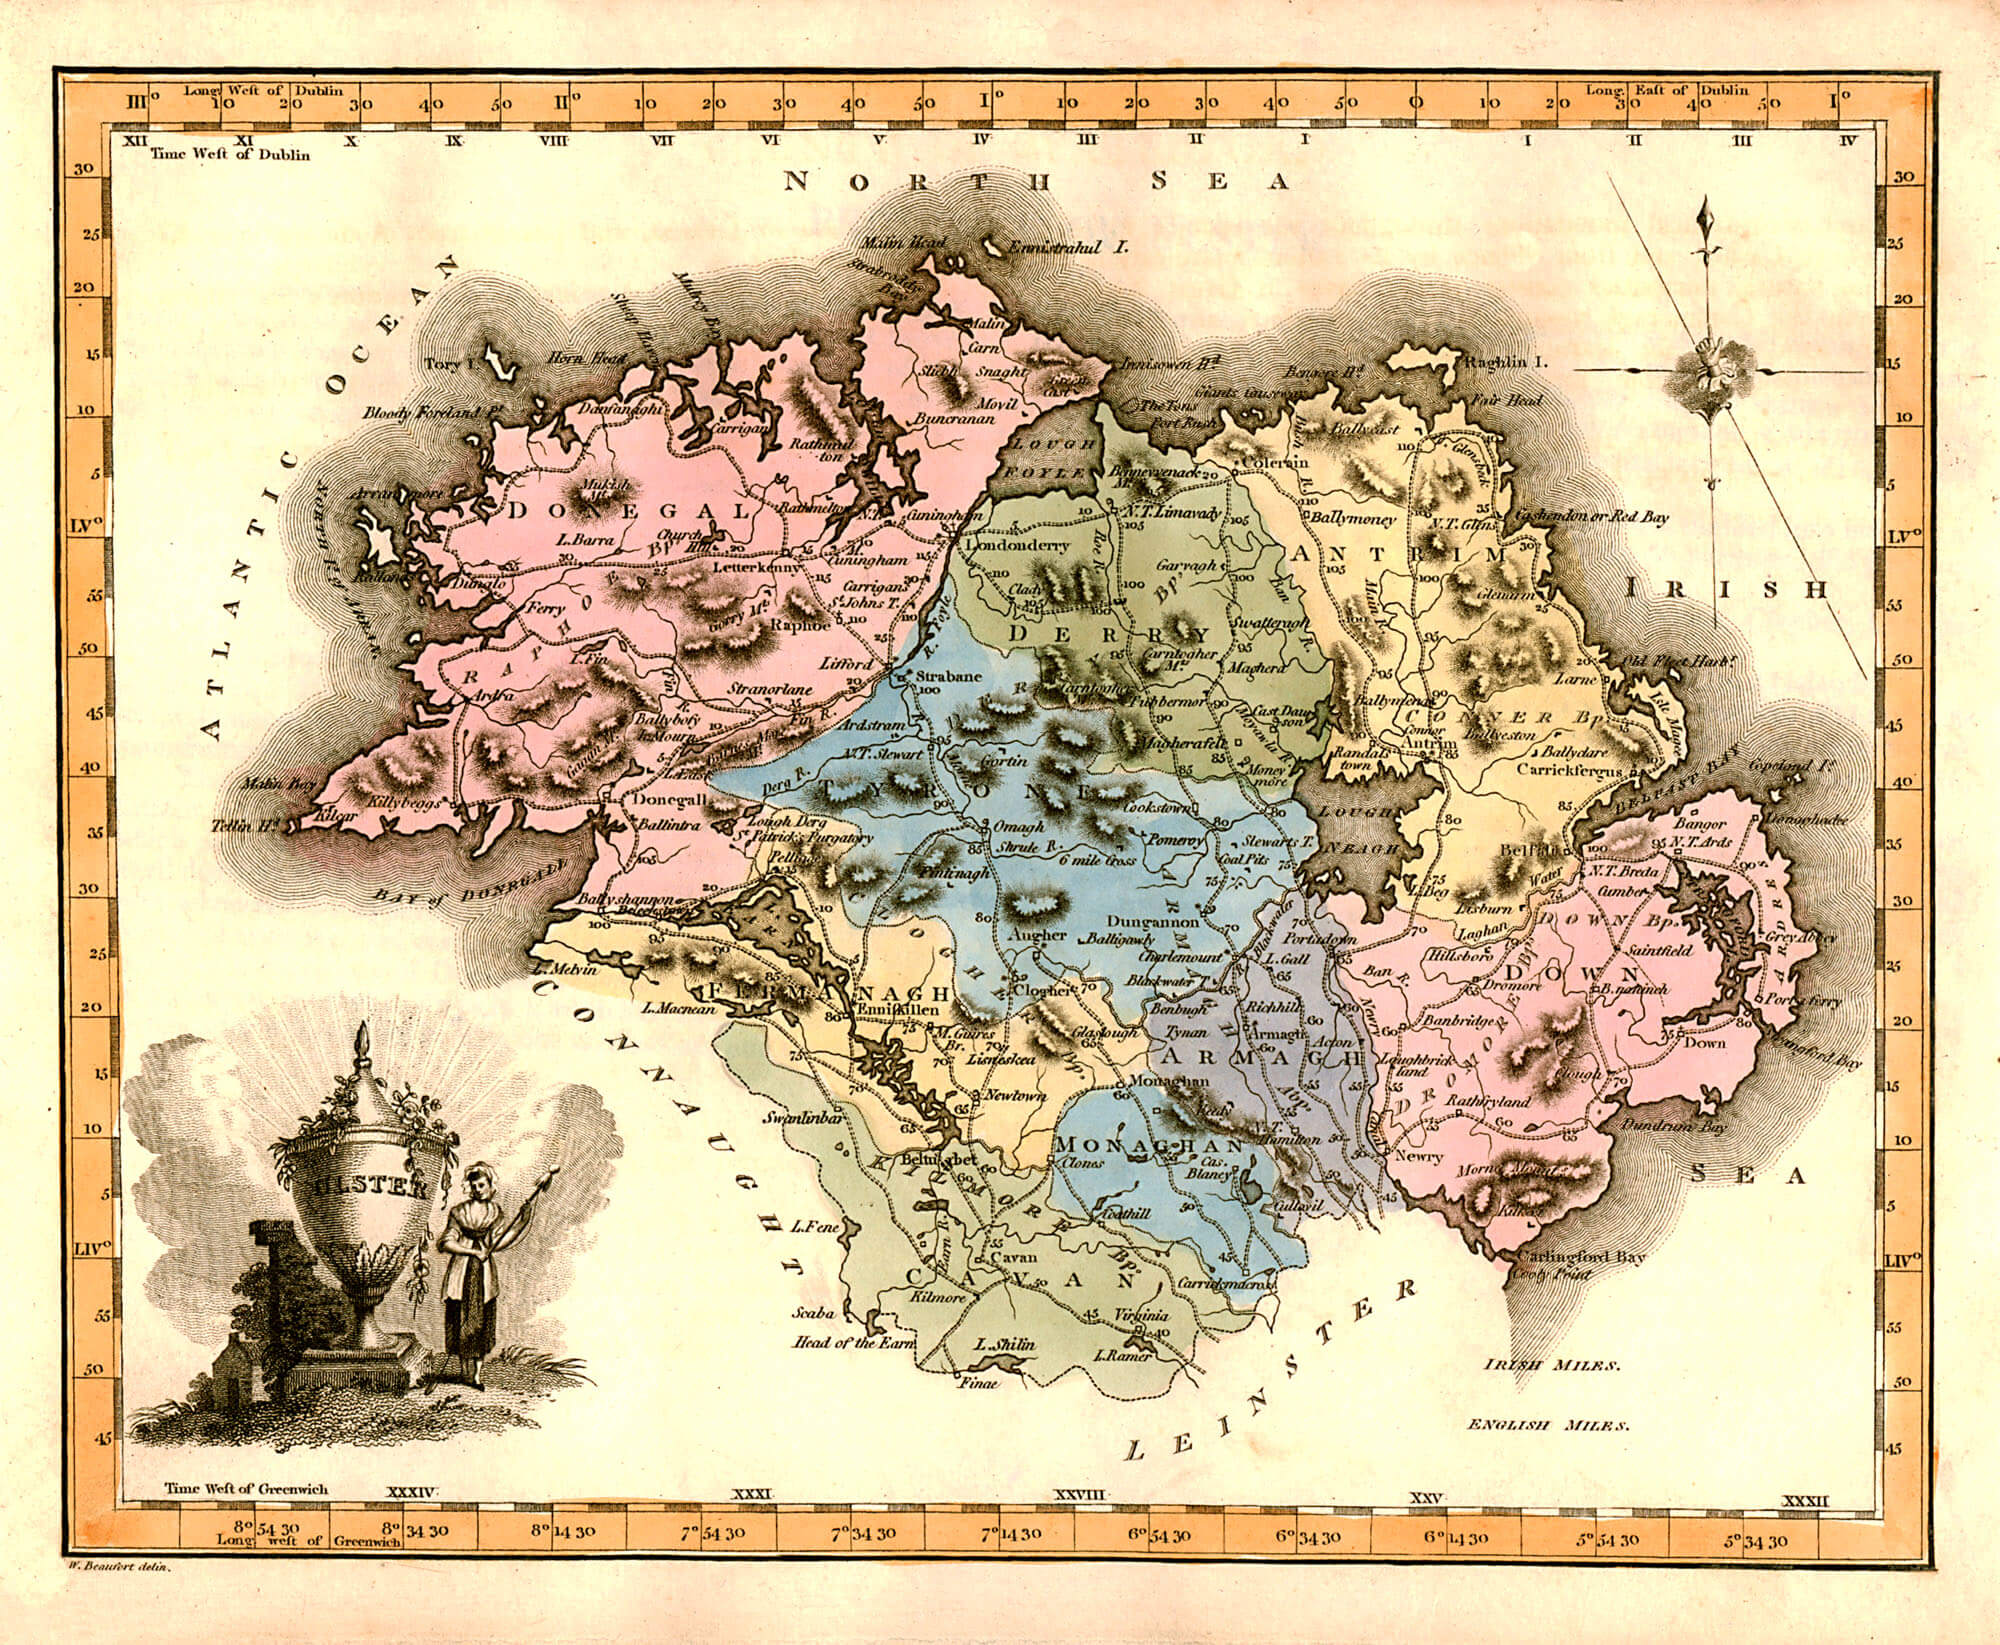 Ireland Counties John Grierson A L Brown Collection - 1823 us map